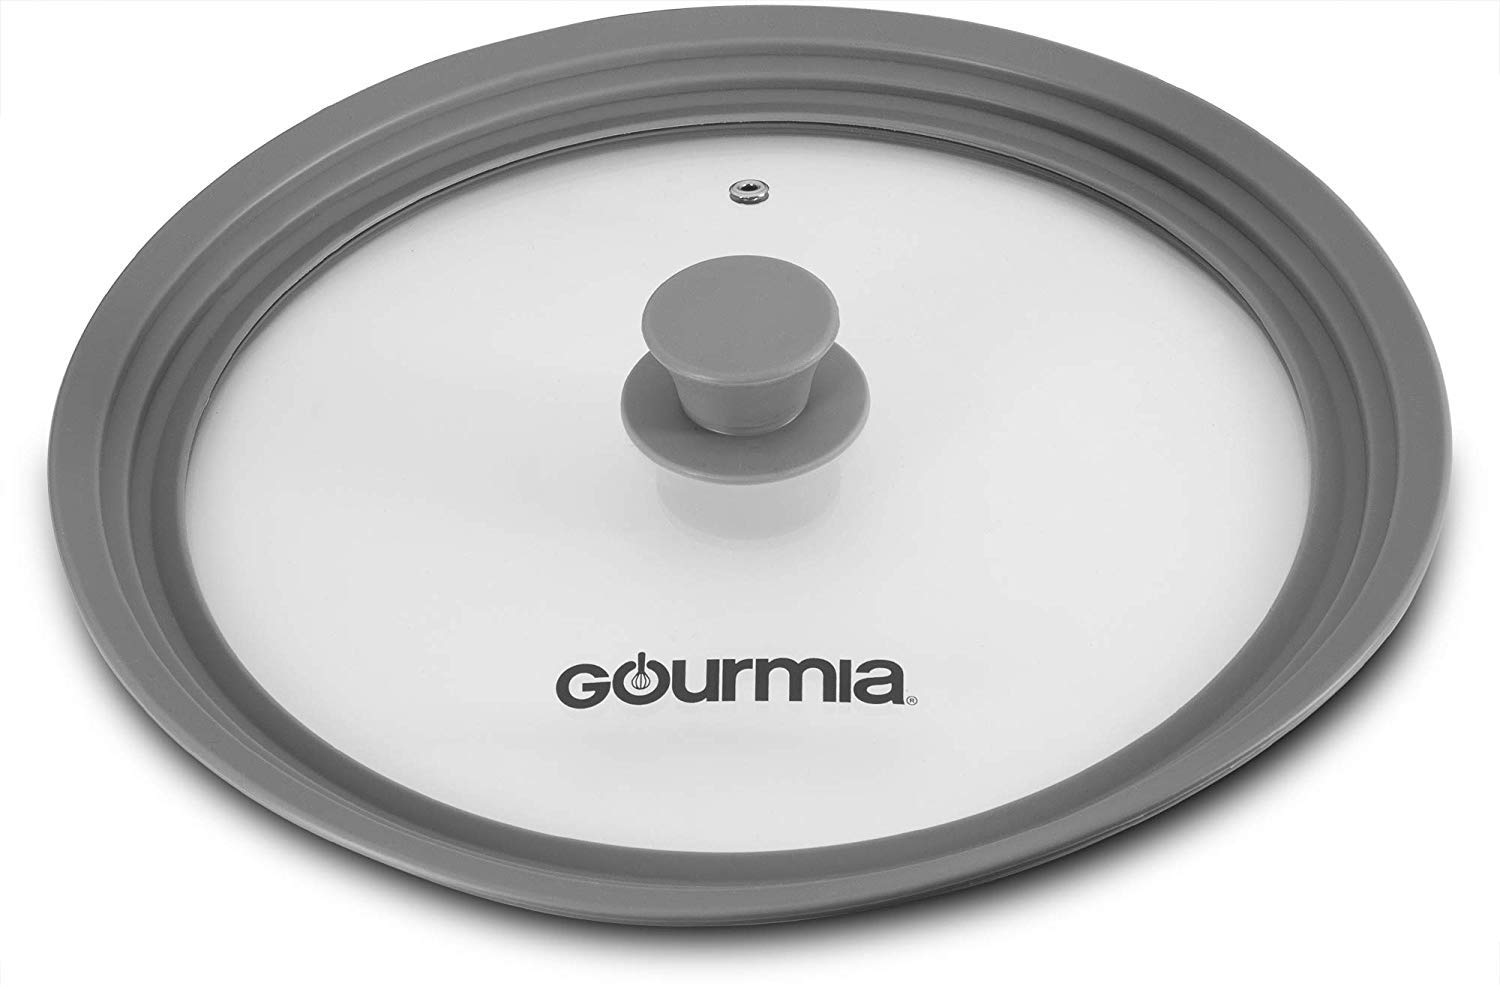 """Gourmia GPL9370 Universal Lid for Pots, Pans and Skillets – Tempered Glass with Extendable Silicone Rim - Fits 10.5"""" to 12.8"""" Cookware – Steam Vent, Dishwasher Safe, Cool Touch Handle"""